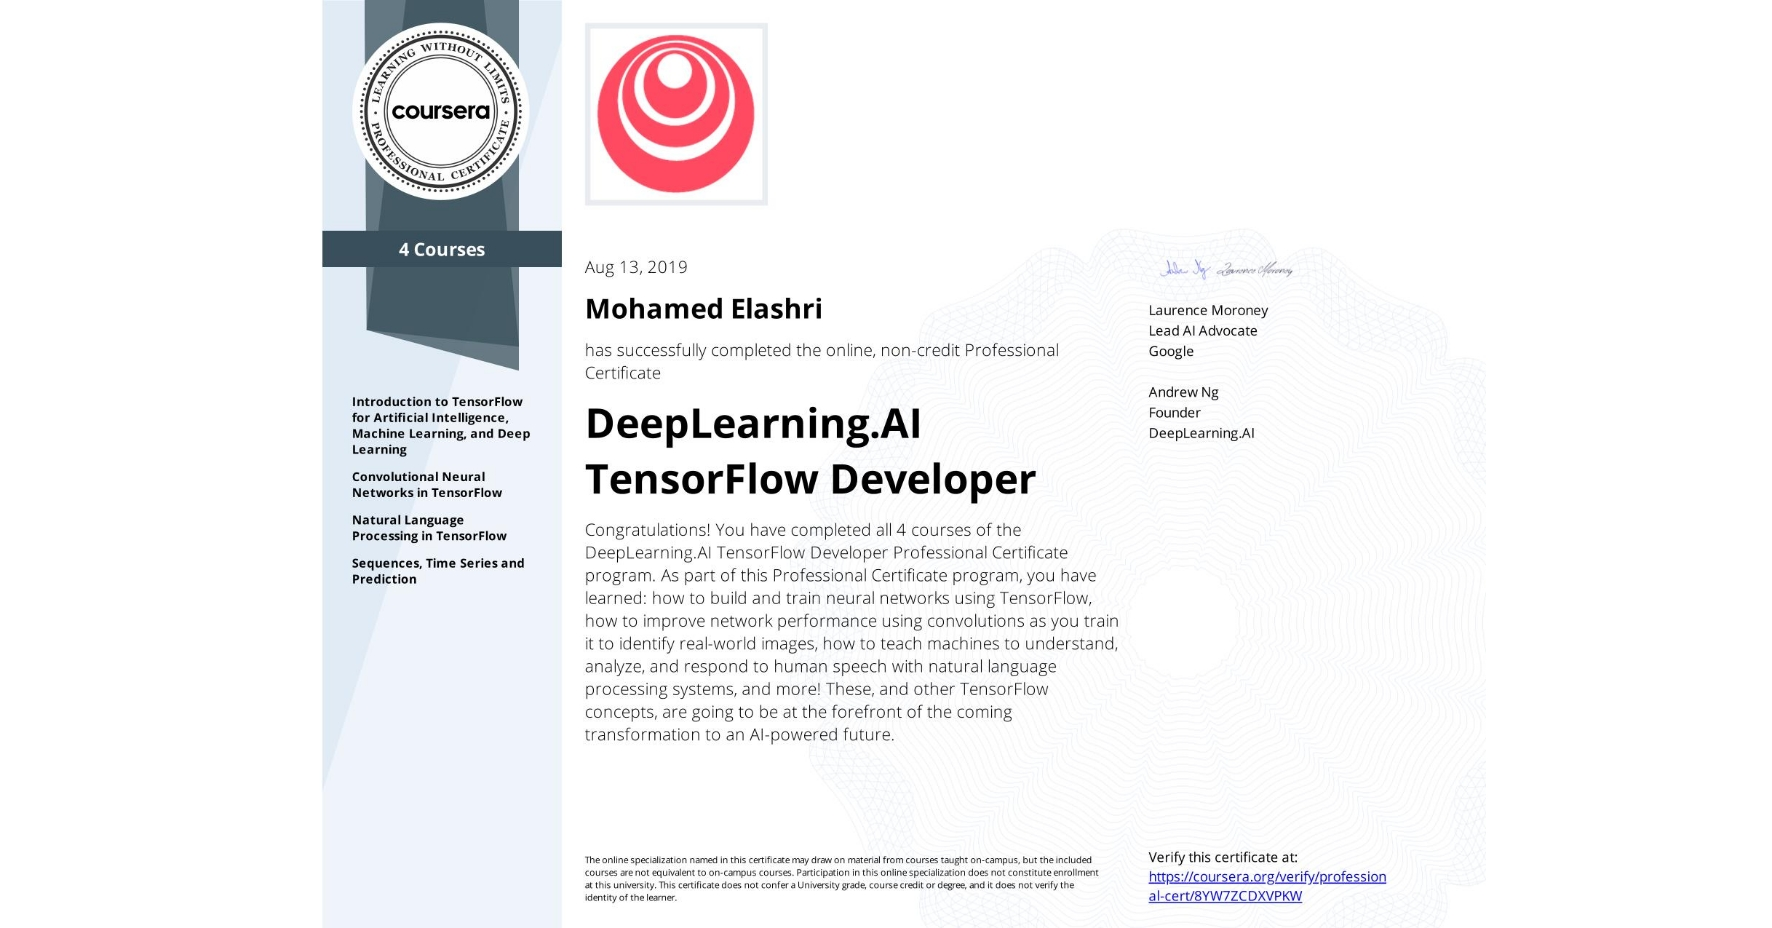 View certificate for Mohamed Elashri, DeepLearning.AI TensorFlow Developer, offered through Coursera. Congratulations! You have completed all 4 courses of the DeepLearning.AI TensorFlow Developer Professional Certificate program.   As part of this Professional Certificate program, you have learned: how to build and train neural networks using TensorFlow, how to improve network performance using convolutions as you train it to identify real-world images, how to teach machines to understand, analyze, and respond to human speech with natural language processing systems, and more!  These, and other TensorFlow concepts, are going to be at the forefront of the coming transformation to an AI-powered future.